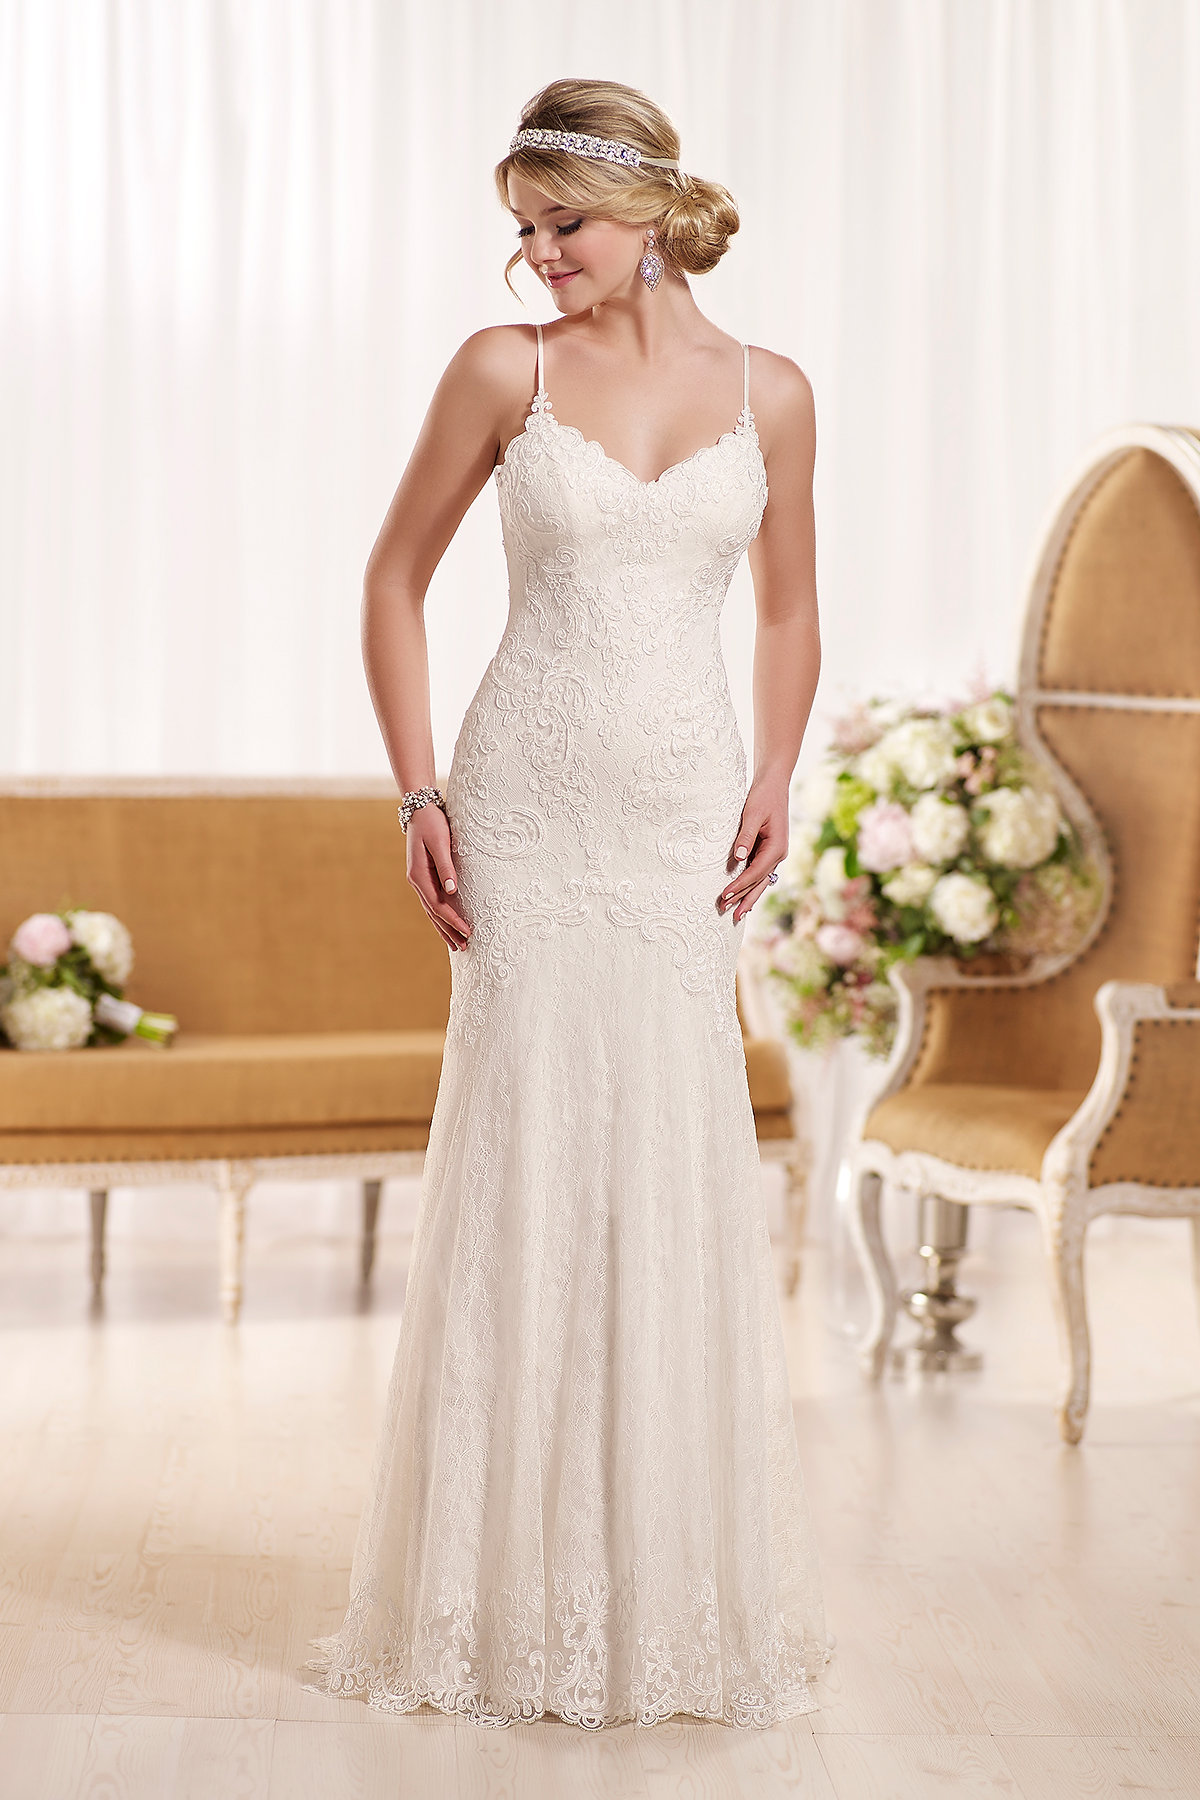 Wedding Dresses May & Grace Bridal Boutique Haslemere